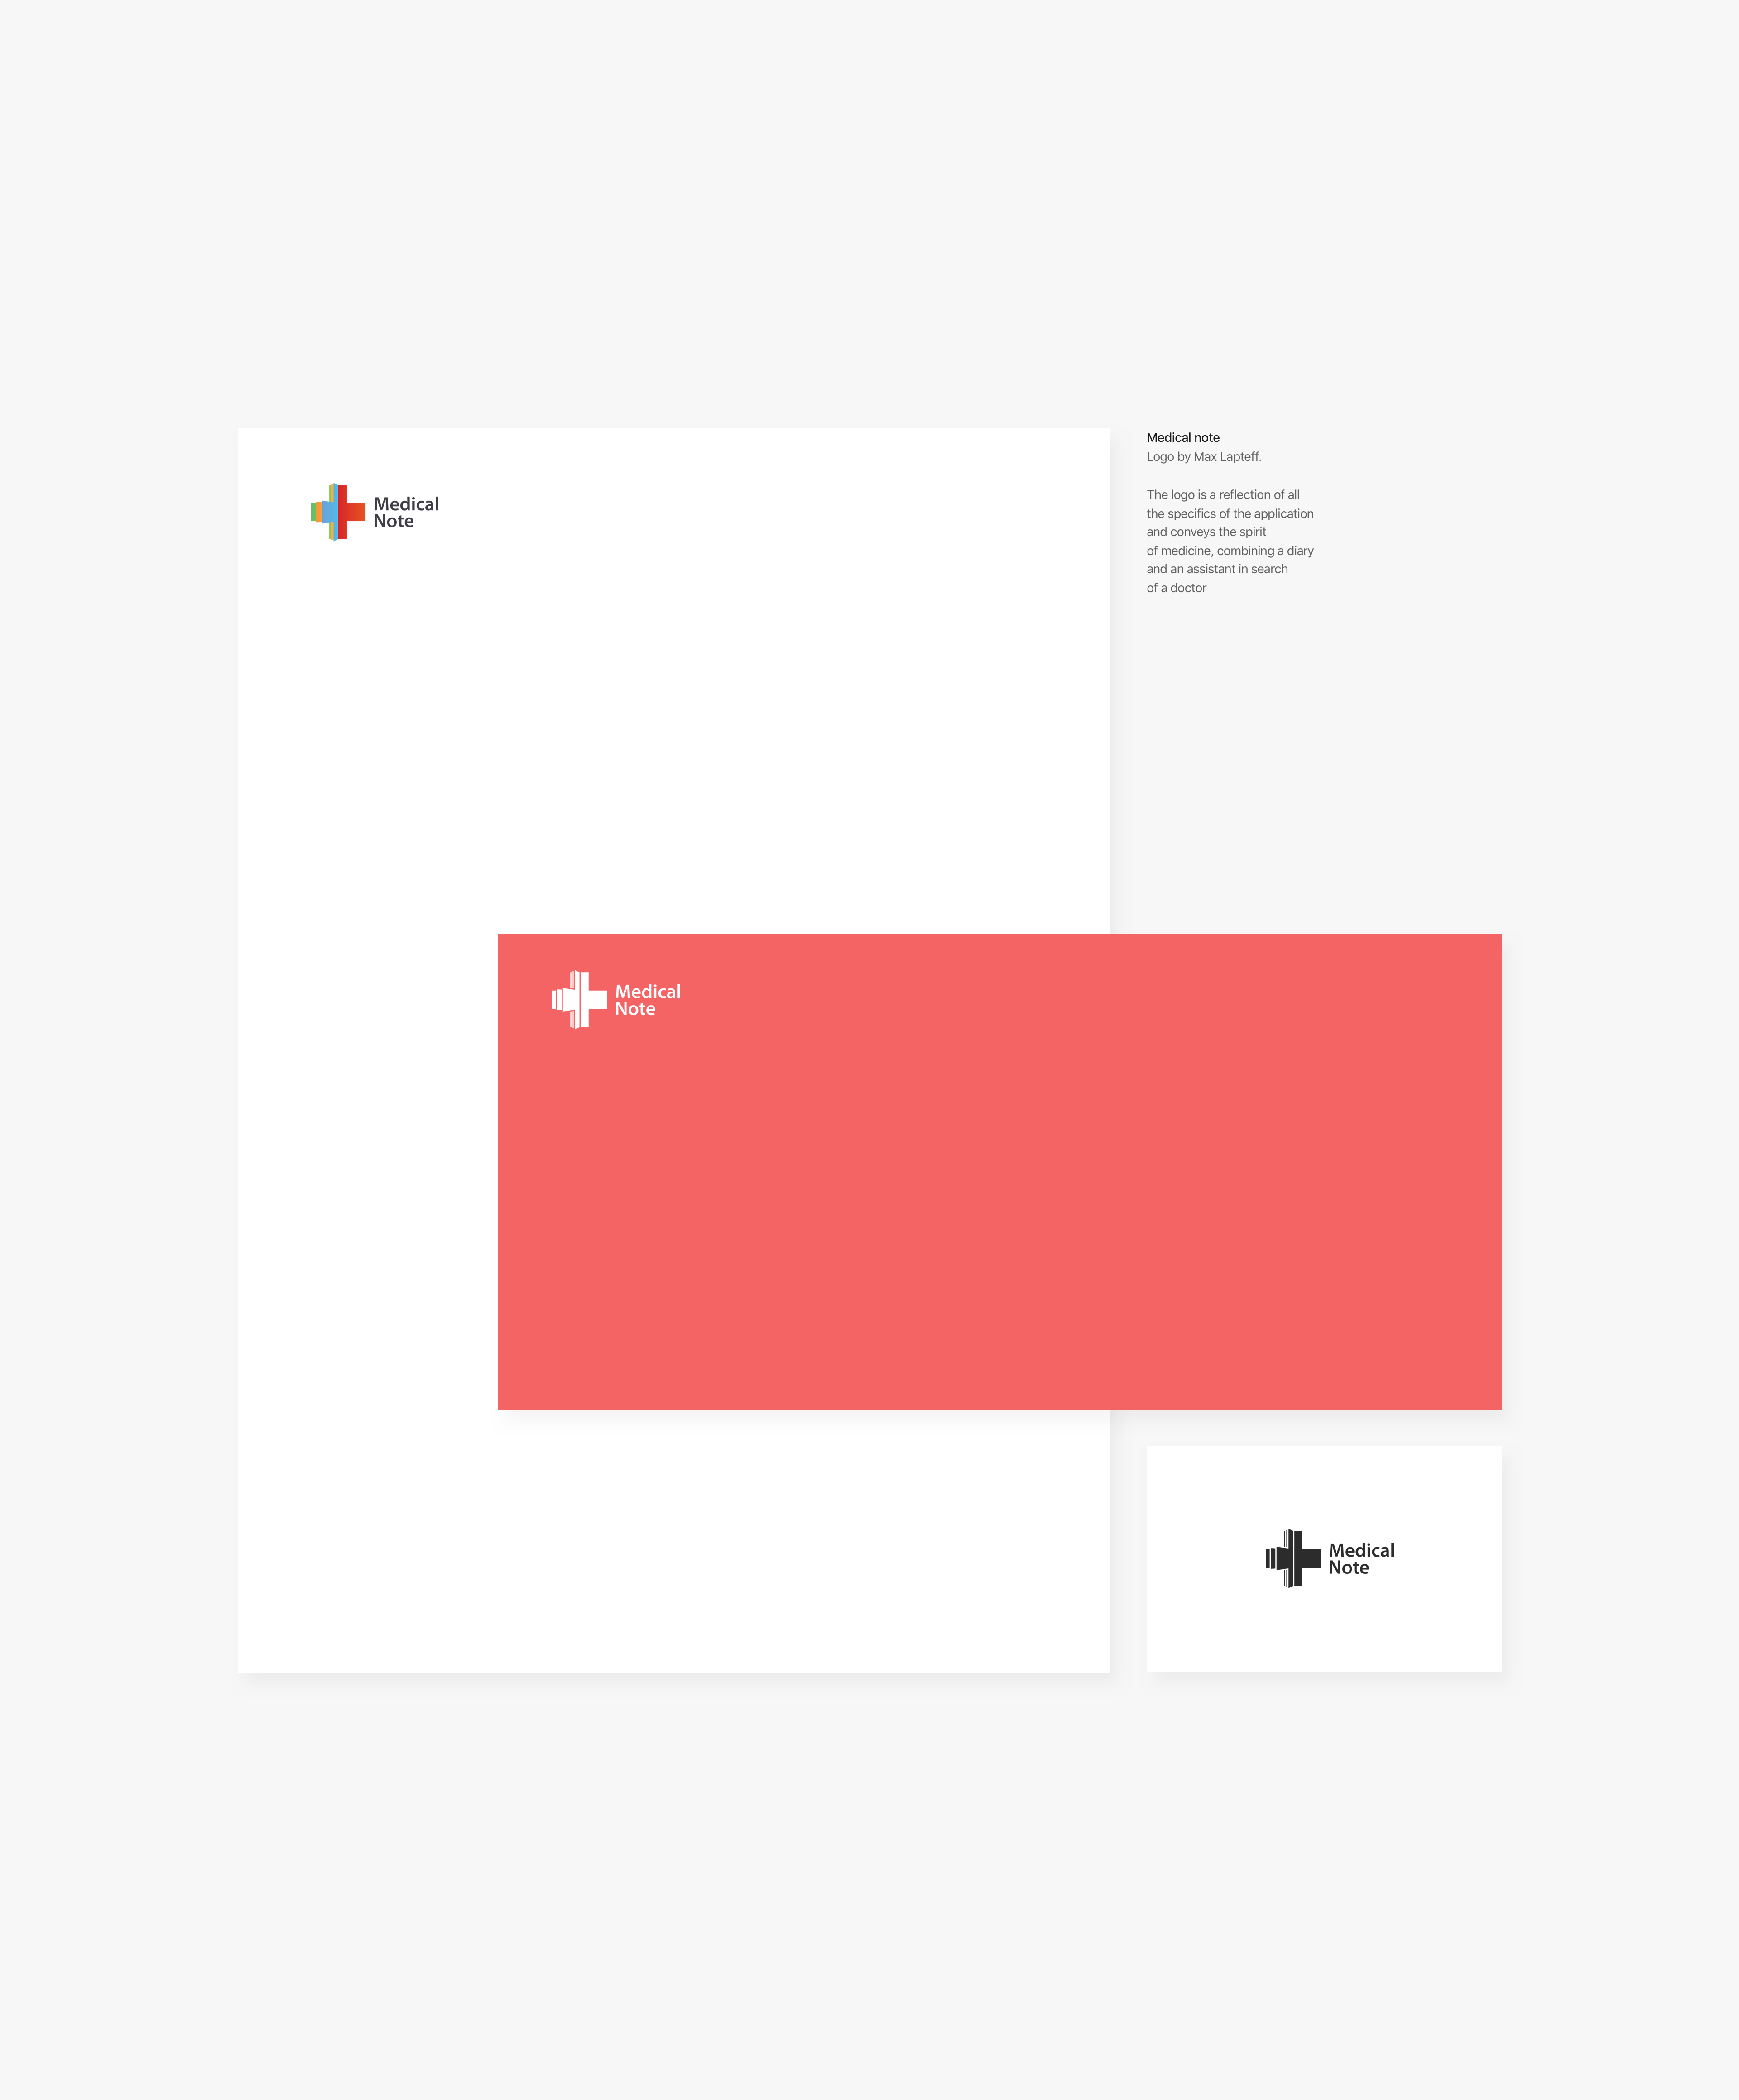 Medical Note On Behance